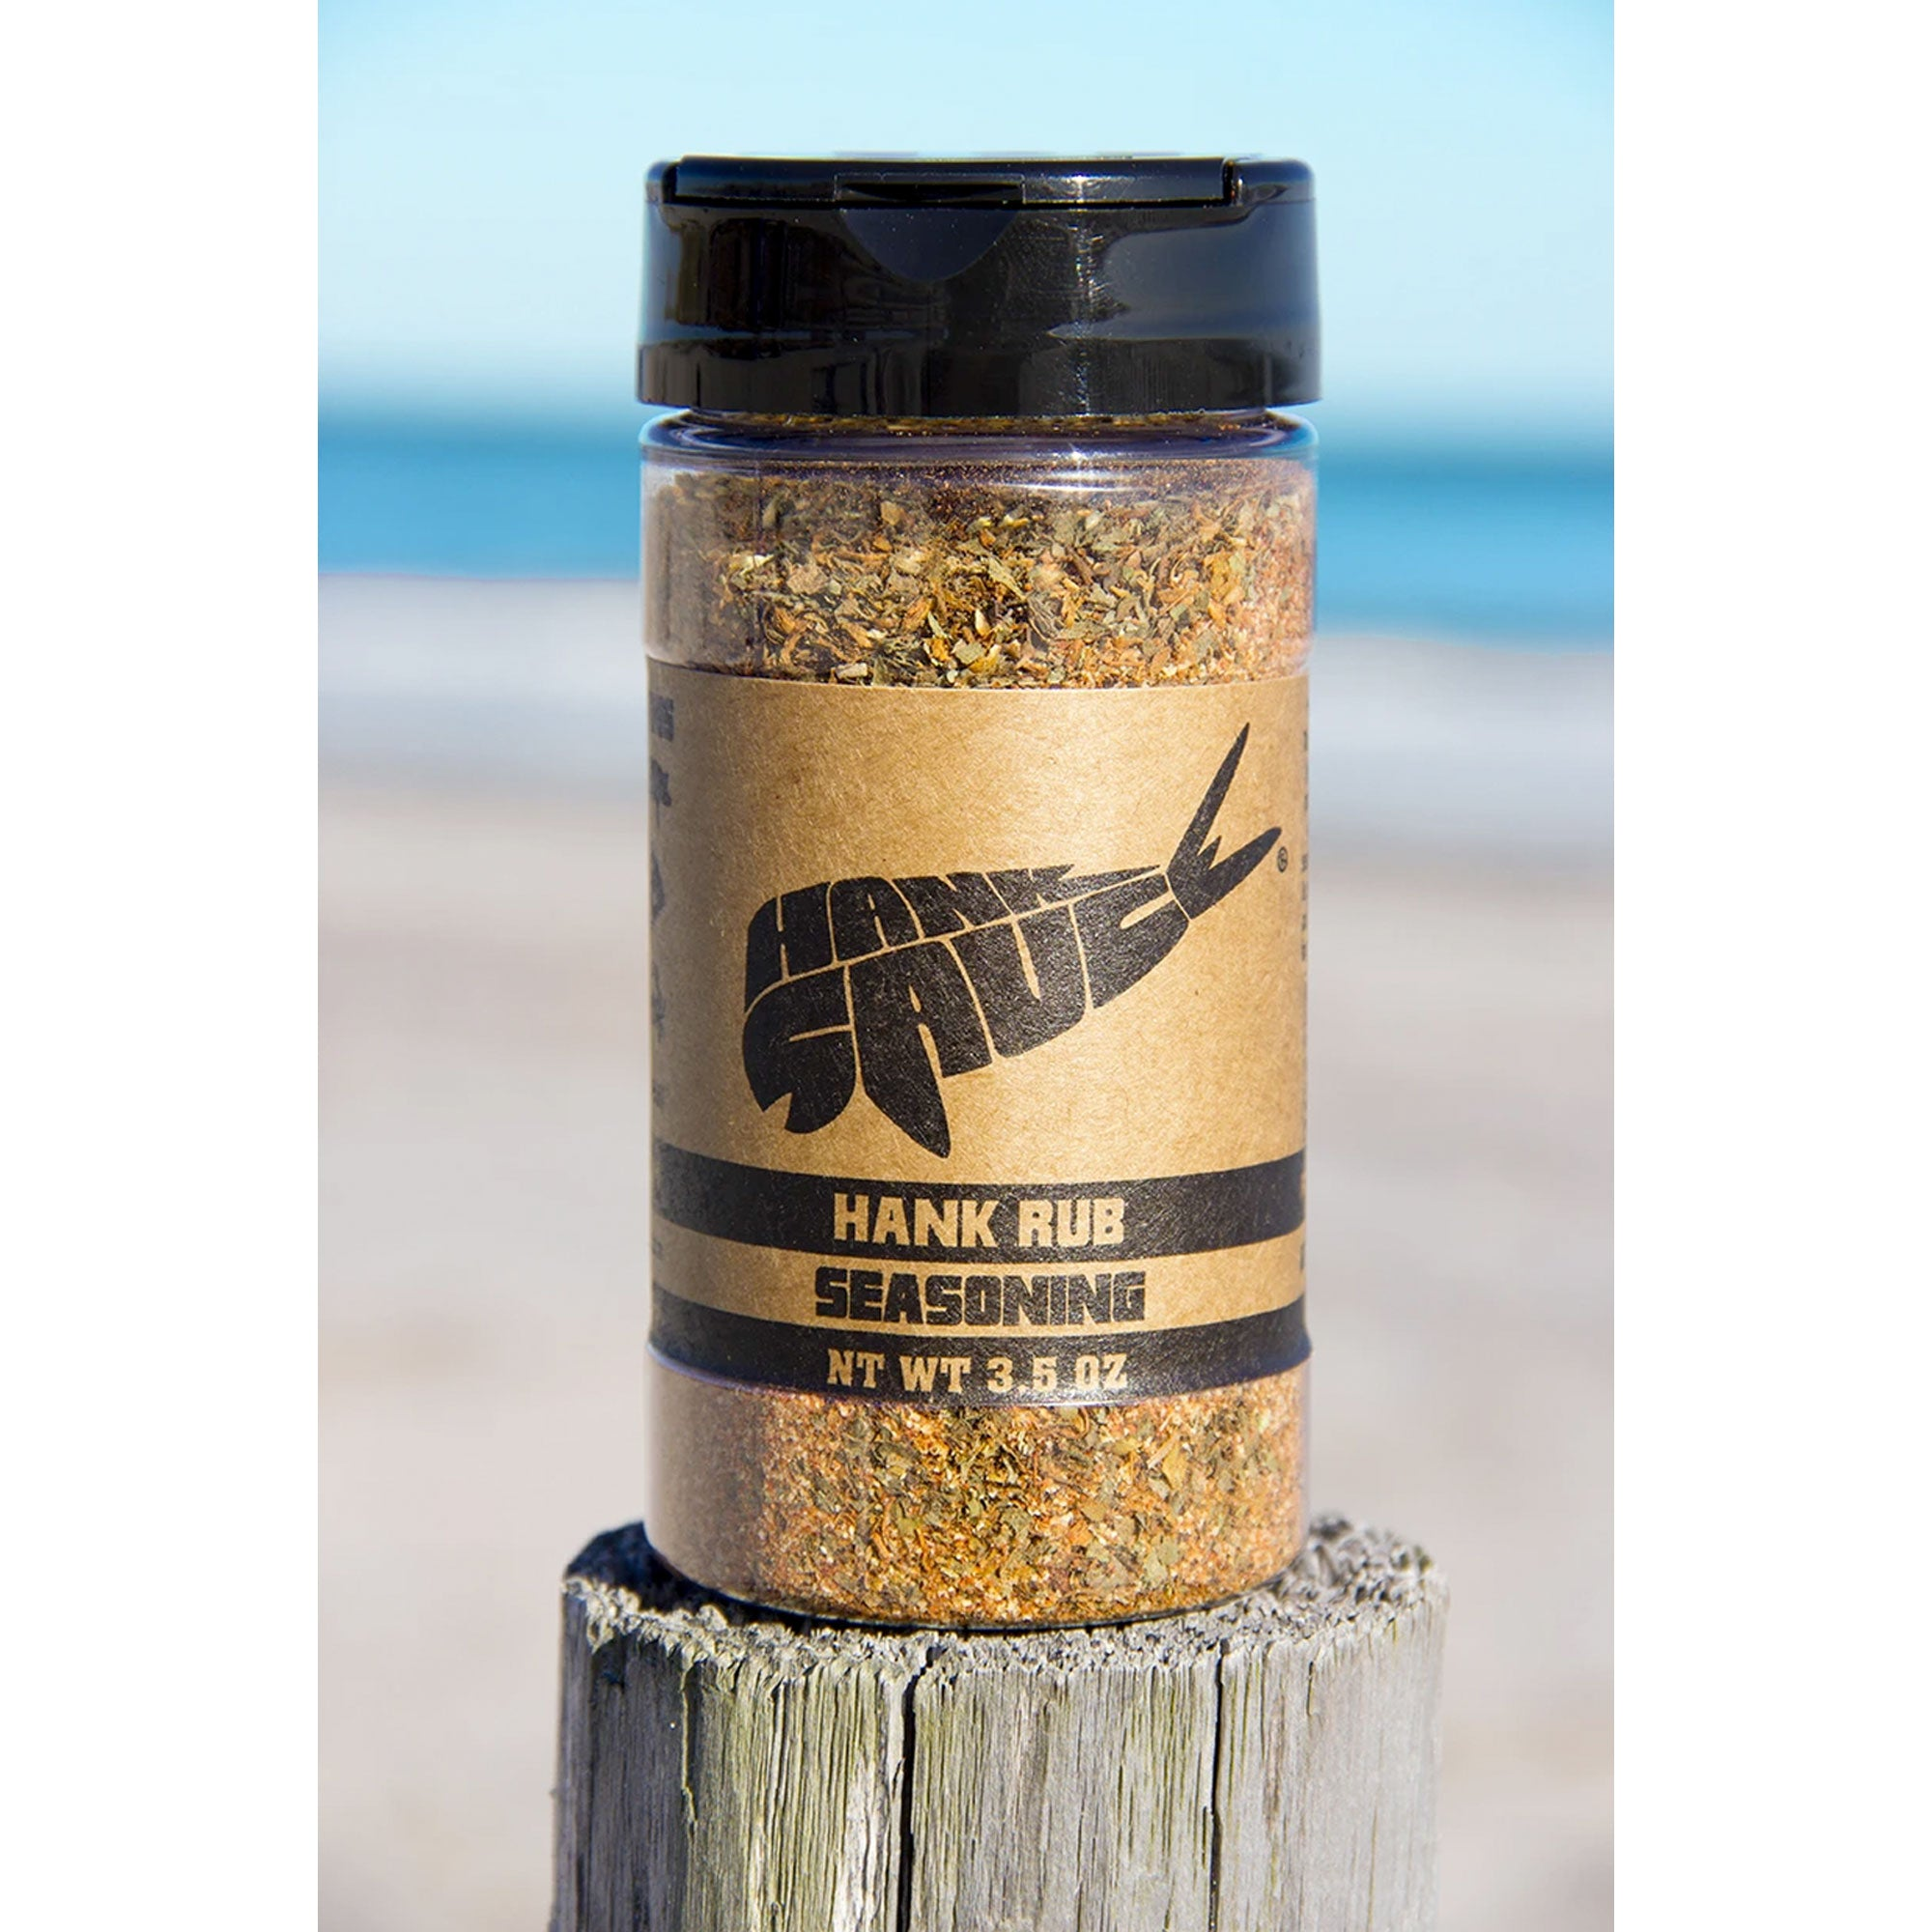 Hank Rub Seasoning